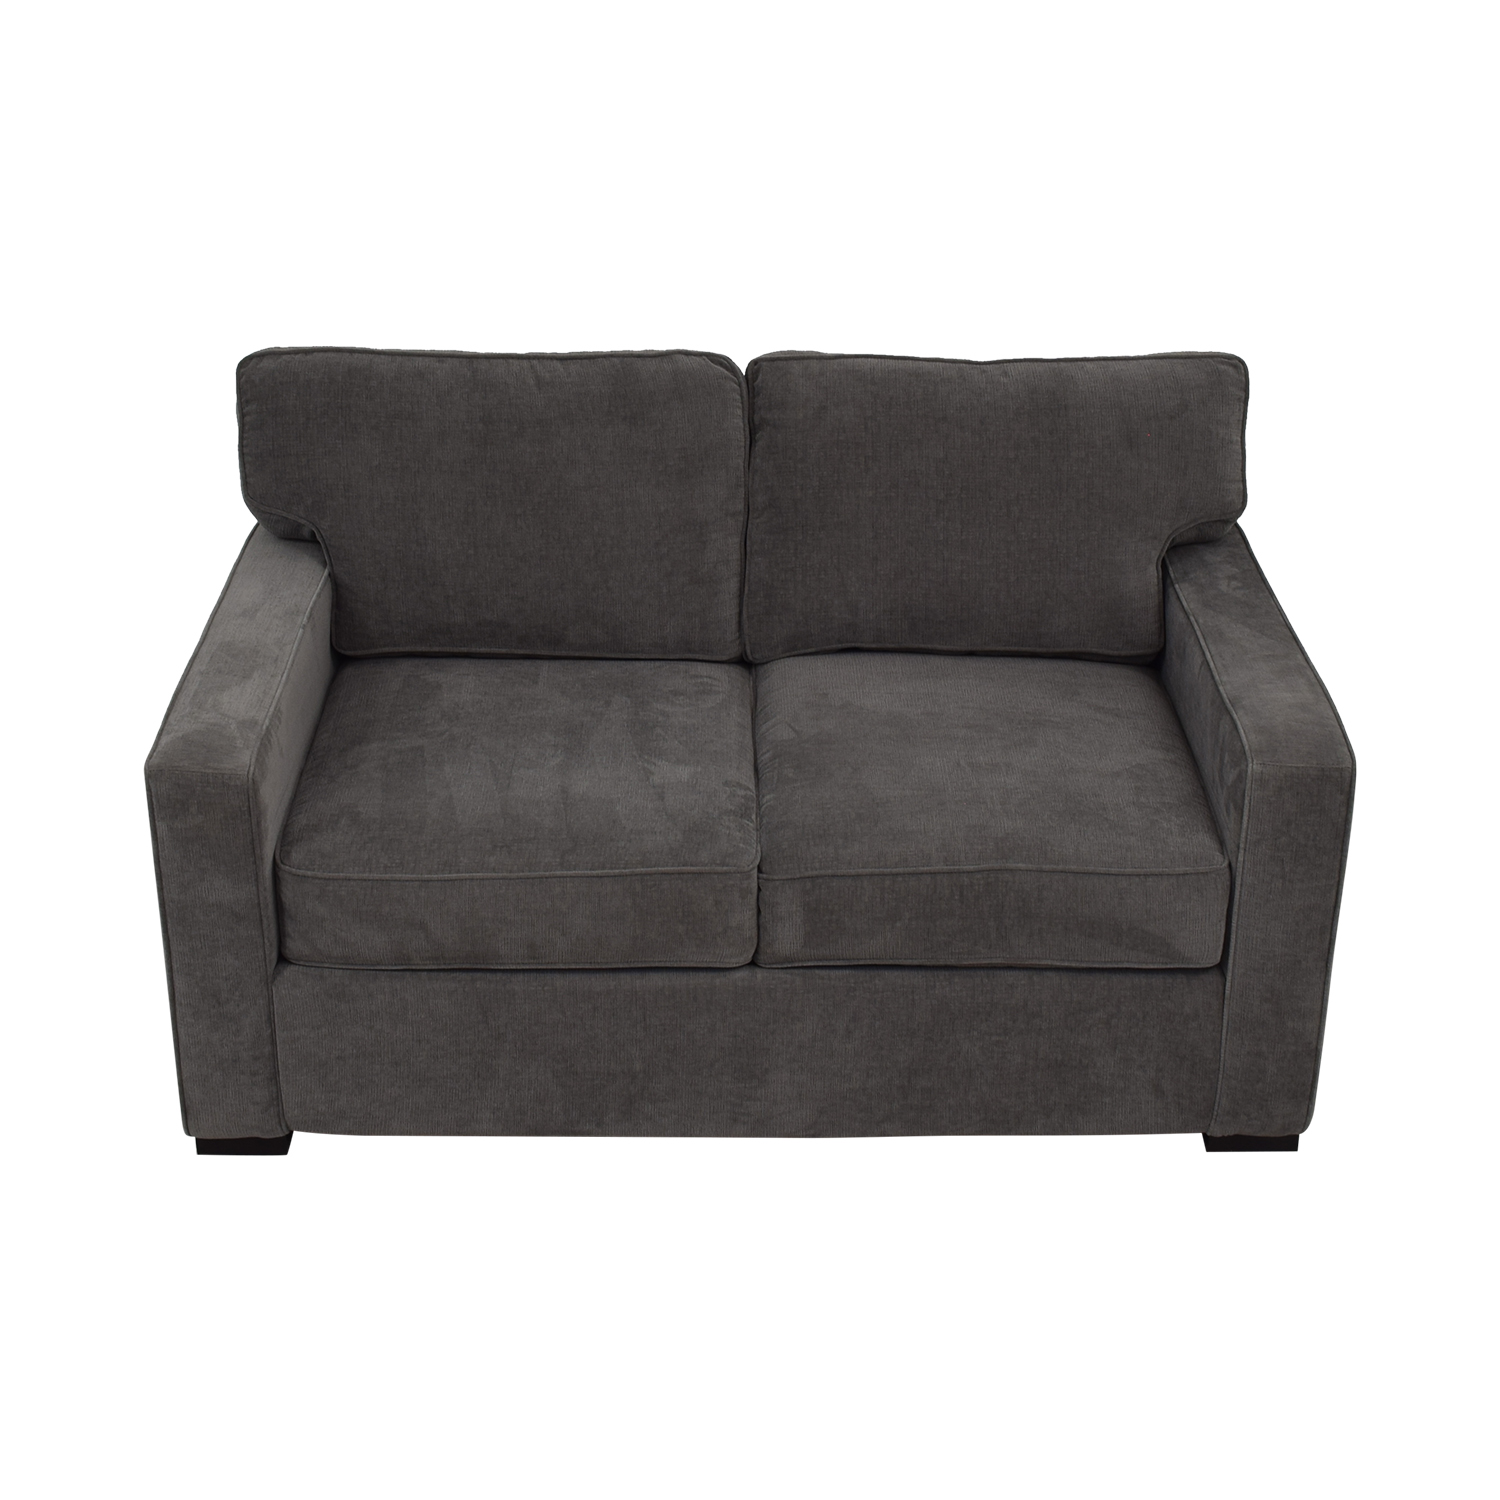 Macy's Macy's Grey Radley Loveseat second hand